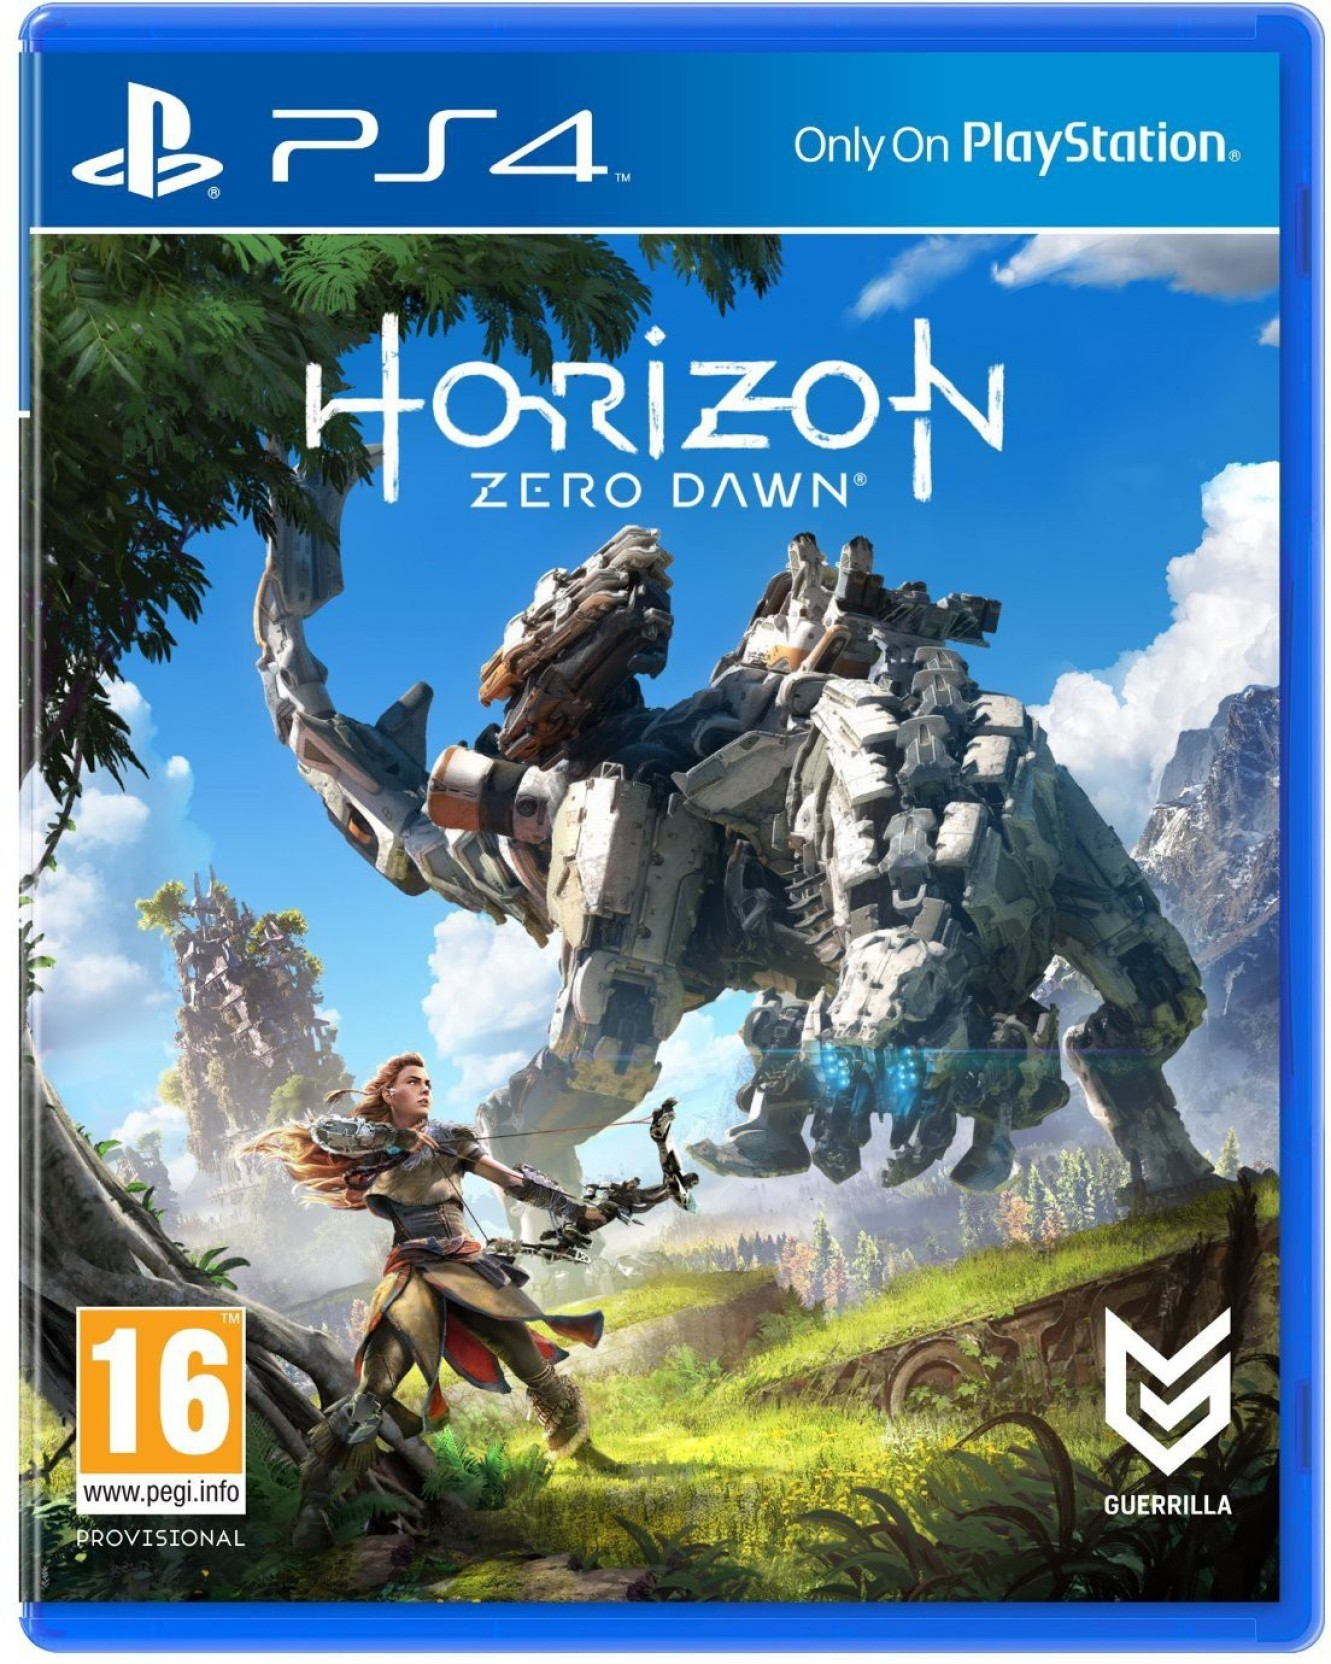 Buy Horizon Zero Dawn For Ps4 Video Game Online At Low Price Sony Playstation 4 Collector Edition Add To Cart